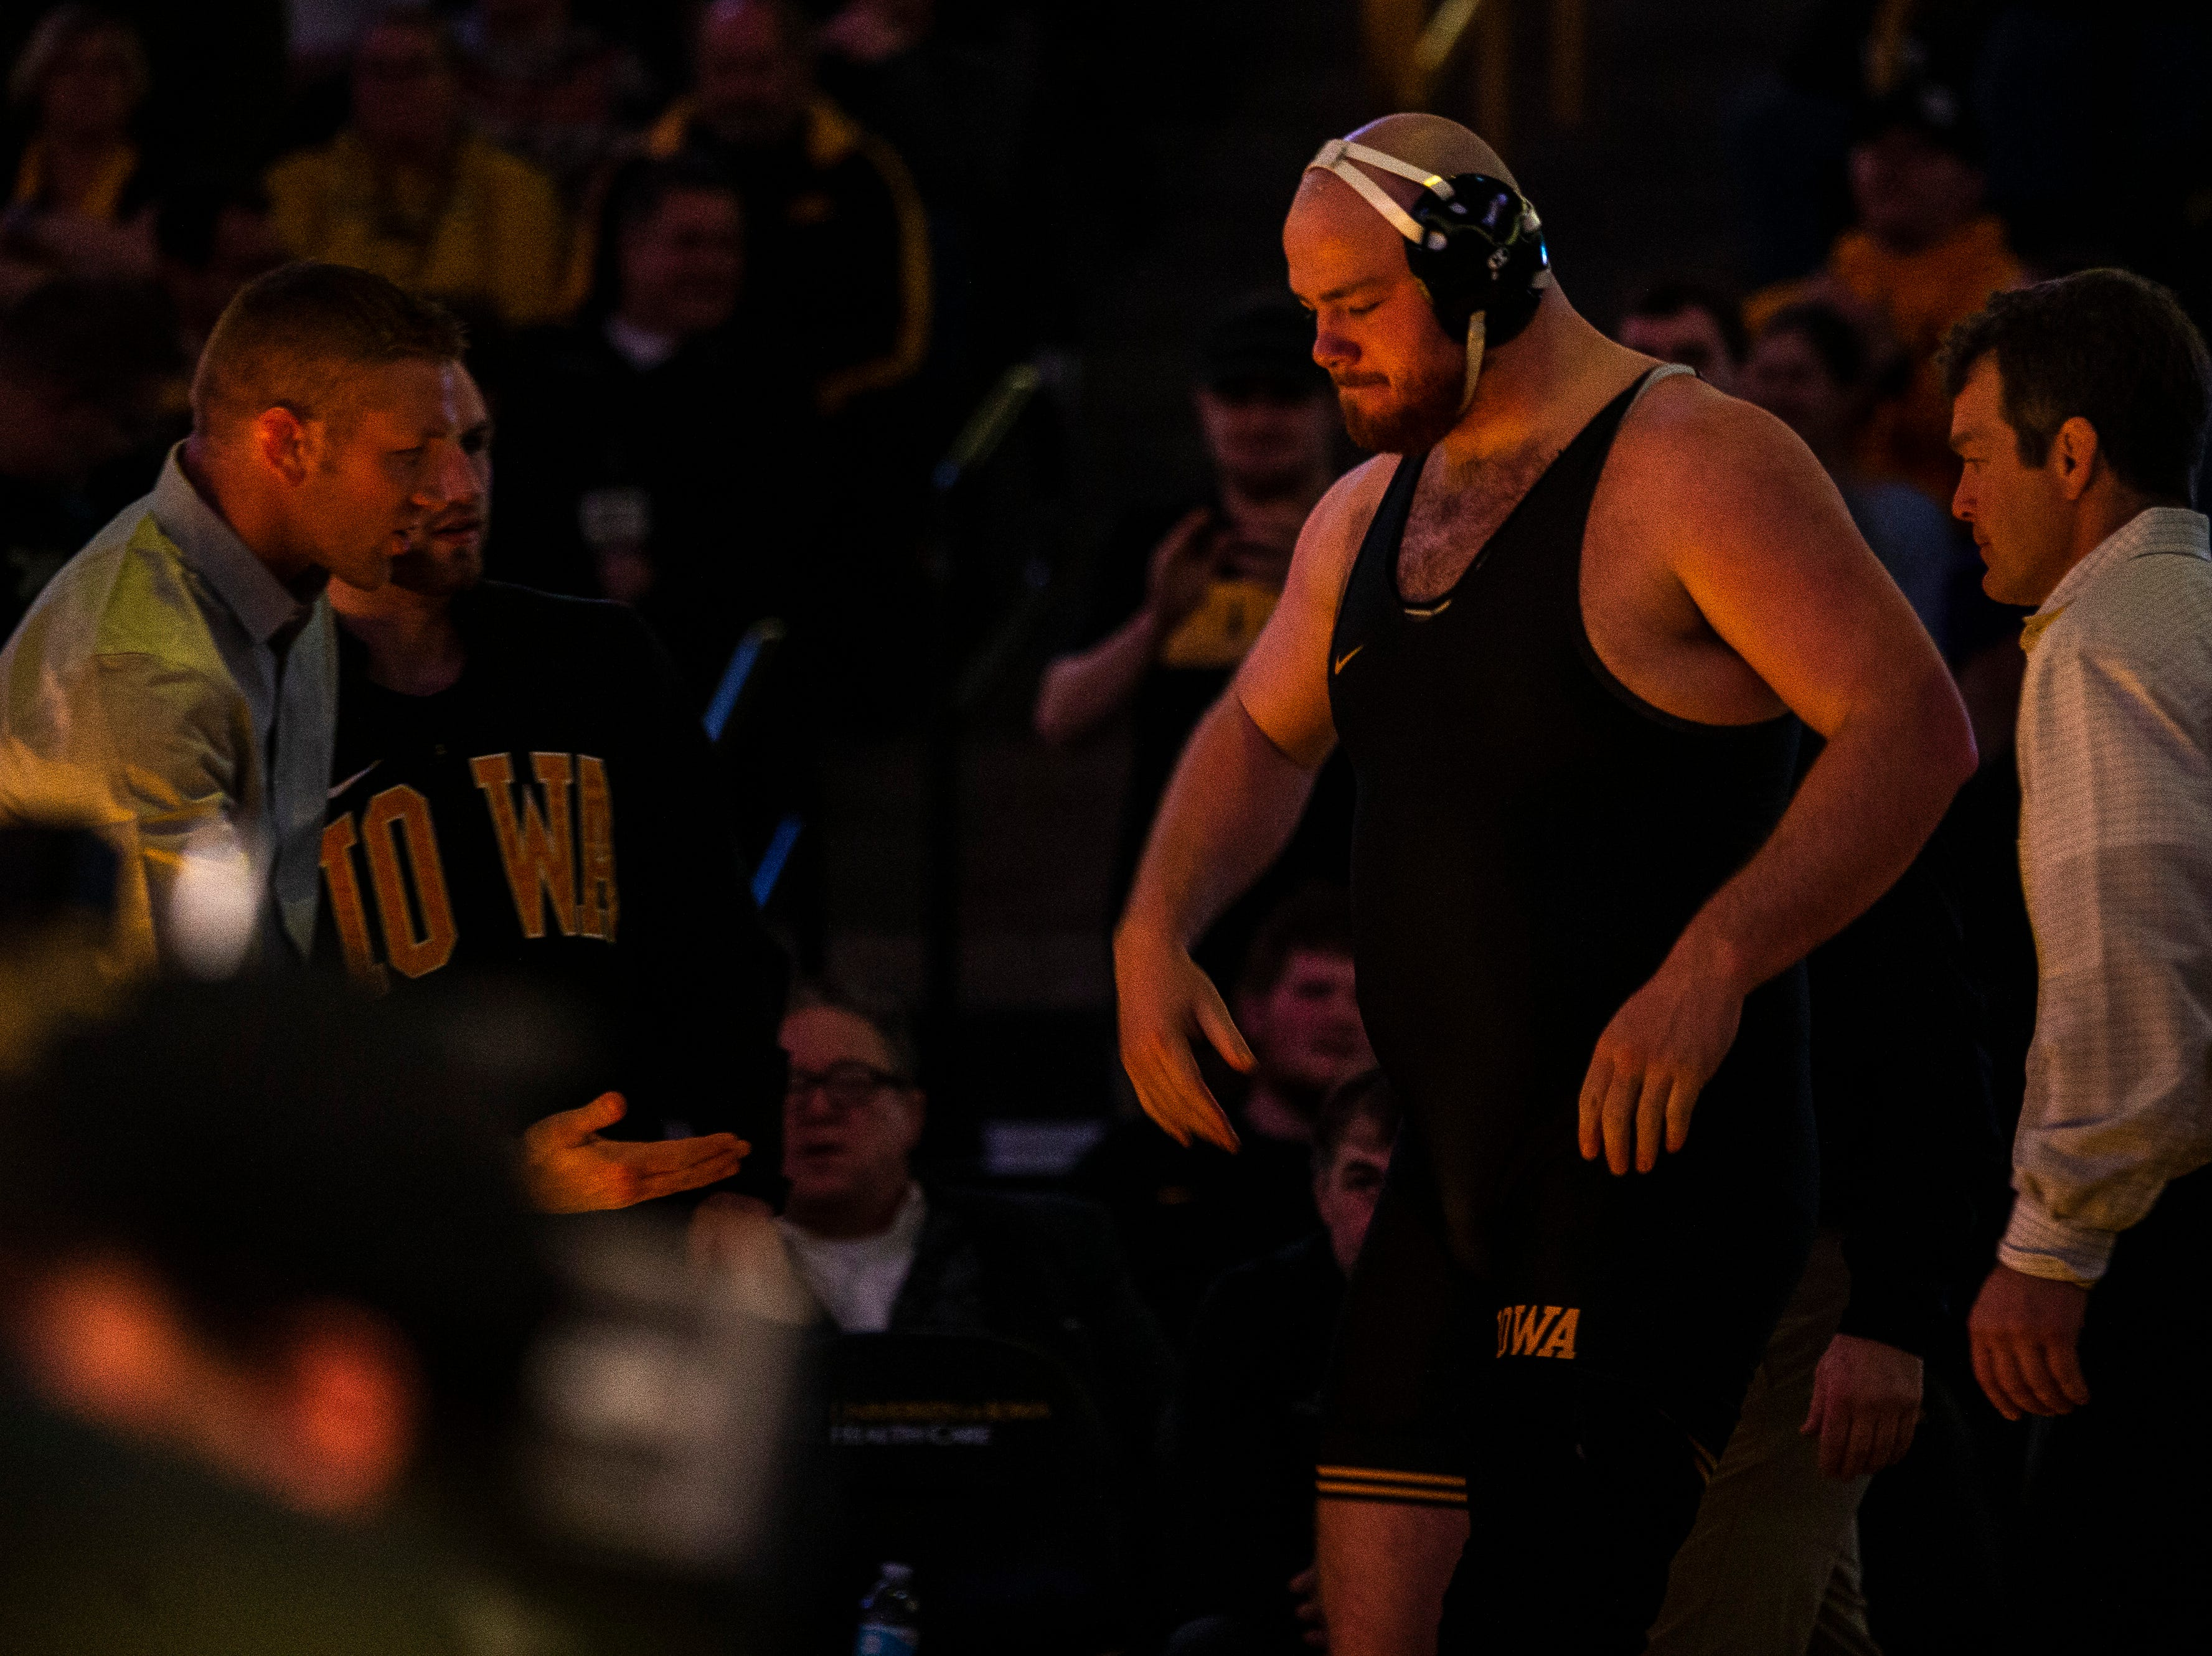 Iowa's Sam Stoll gets a high-five from assistant Ryan Morningstar, left, before a match a 285 during a NCAA Big Ten Conference wrestling dual on Friday, Feb. 8, 2019 at Carver-Hawkeye Arena in Iowa City, Iowa.